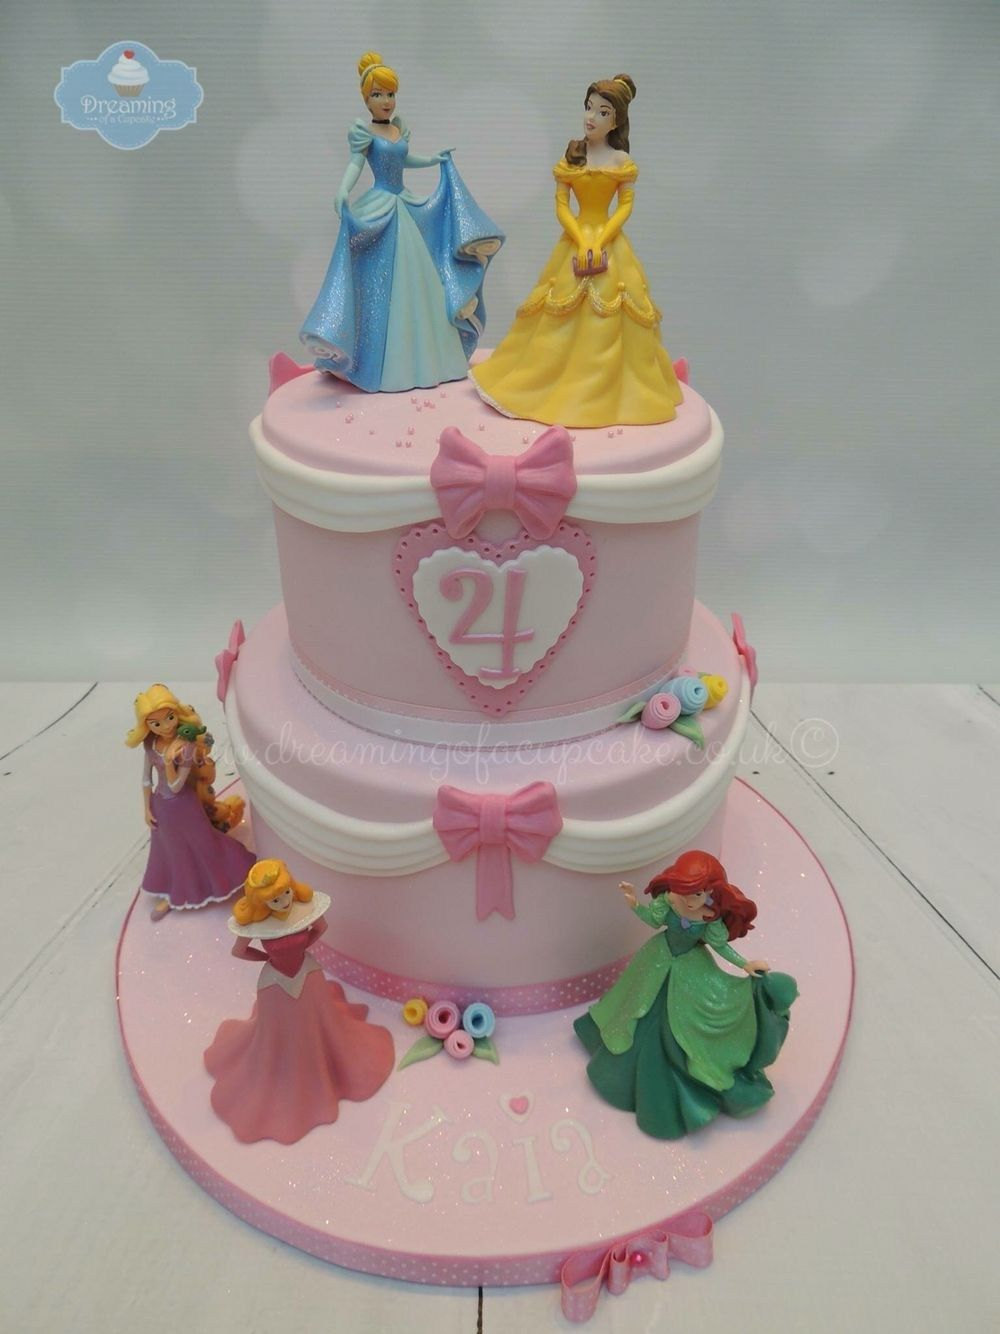 Amazing 27 Exclusive Photo Of Disney Princess Birthday Cakes With Images Funny Birthday Cards Online Alyptdamsfinfo